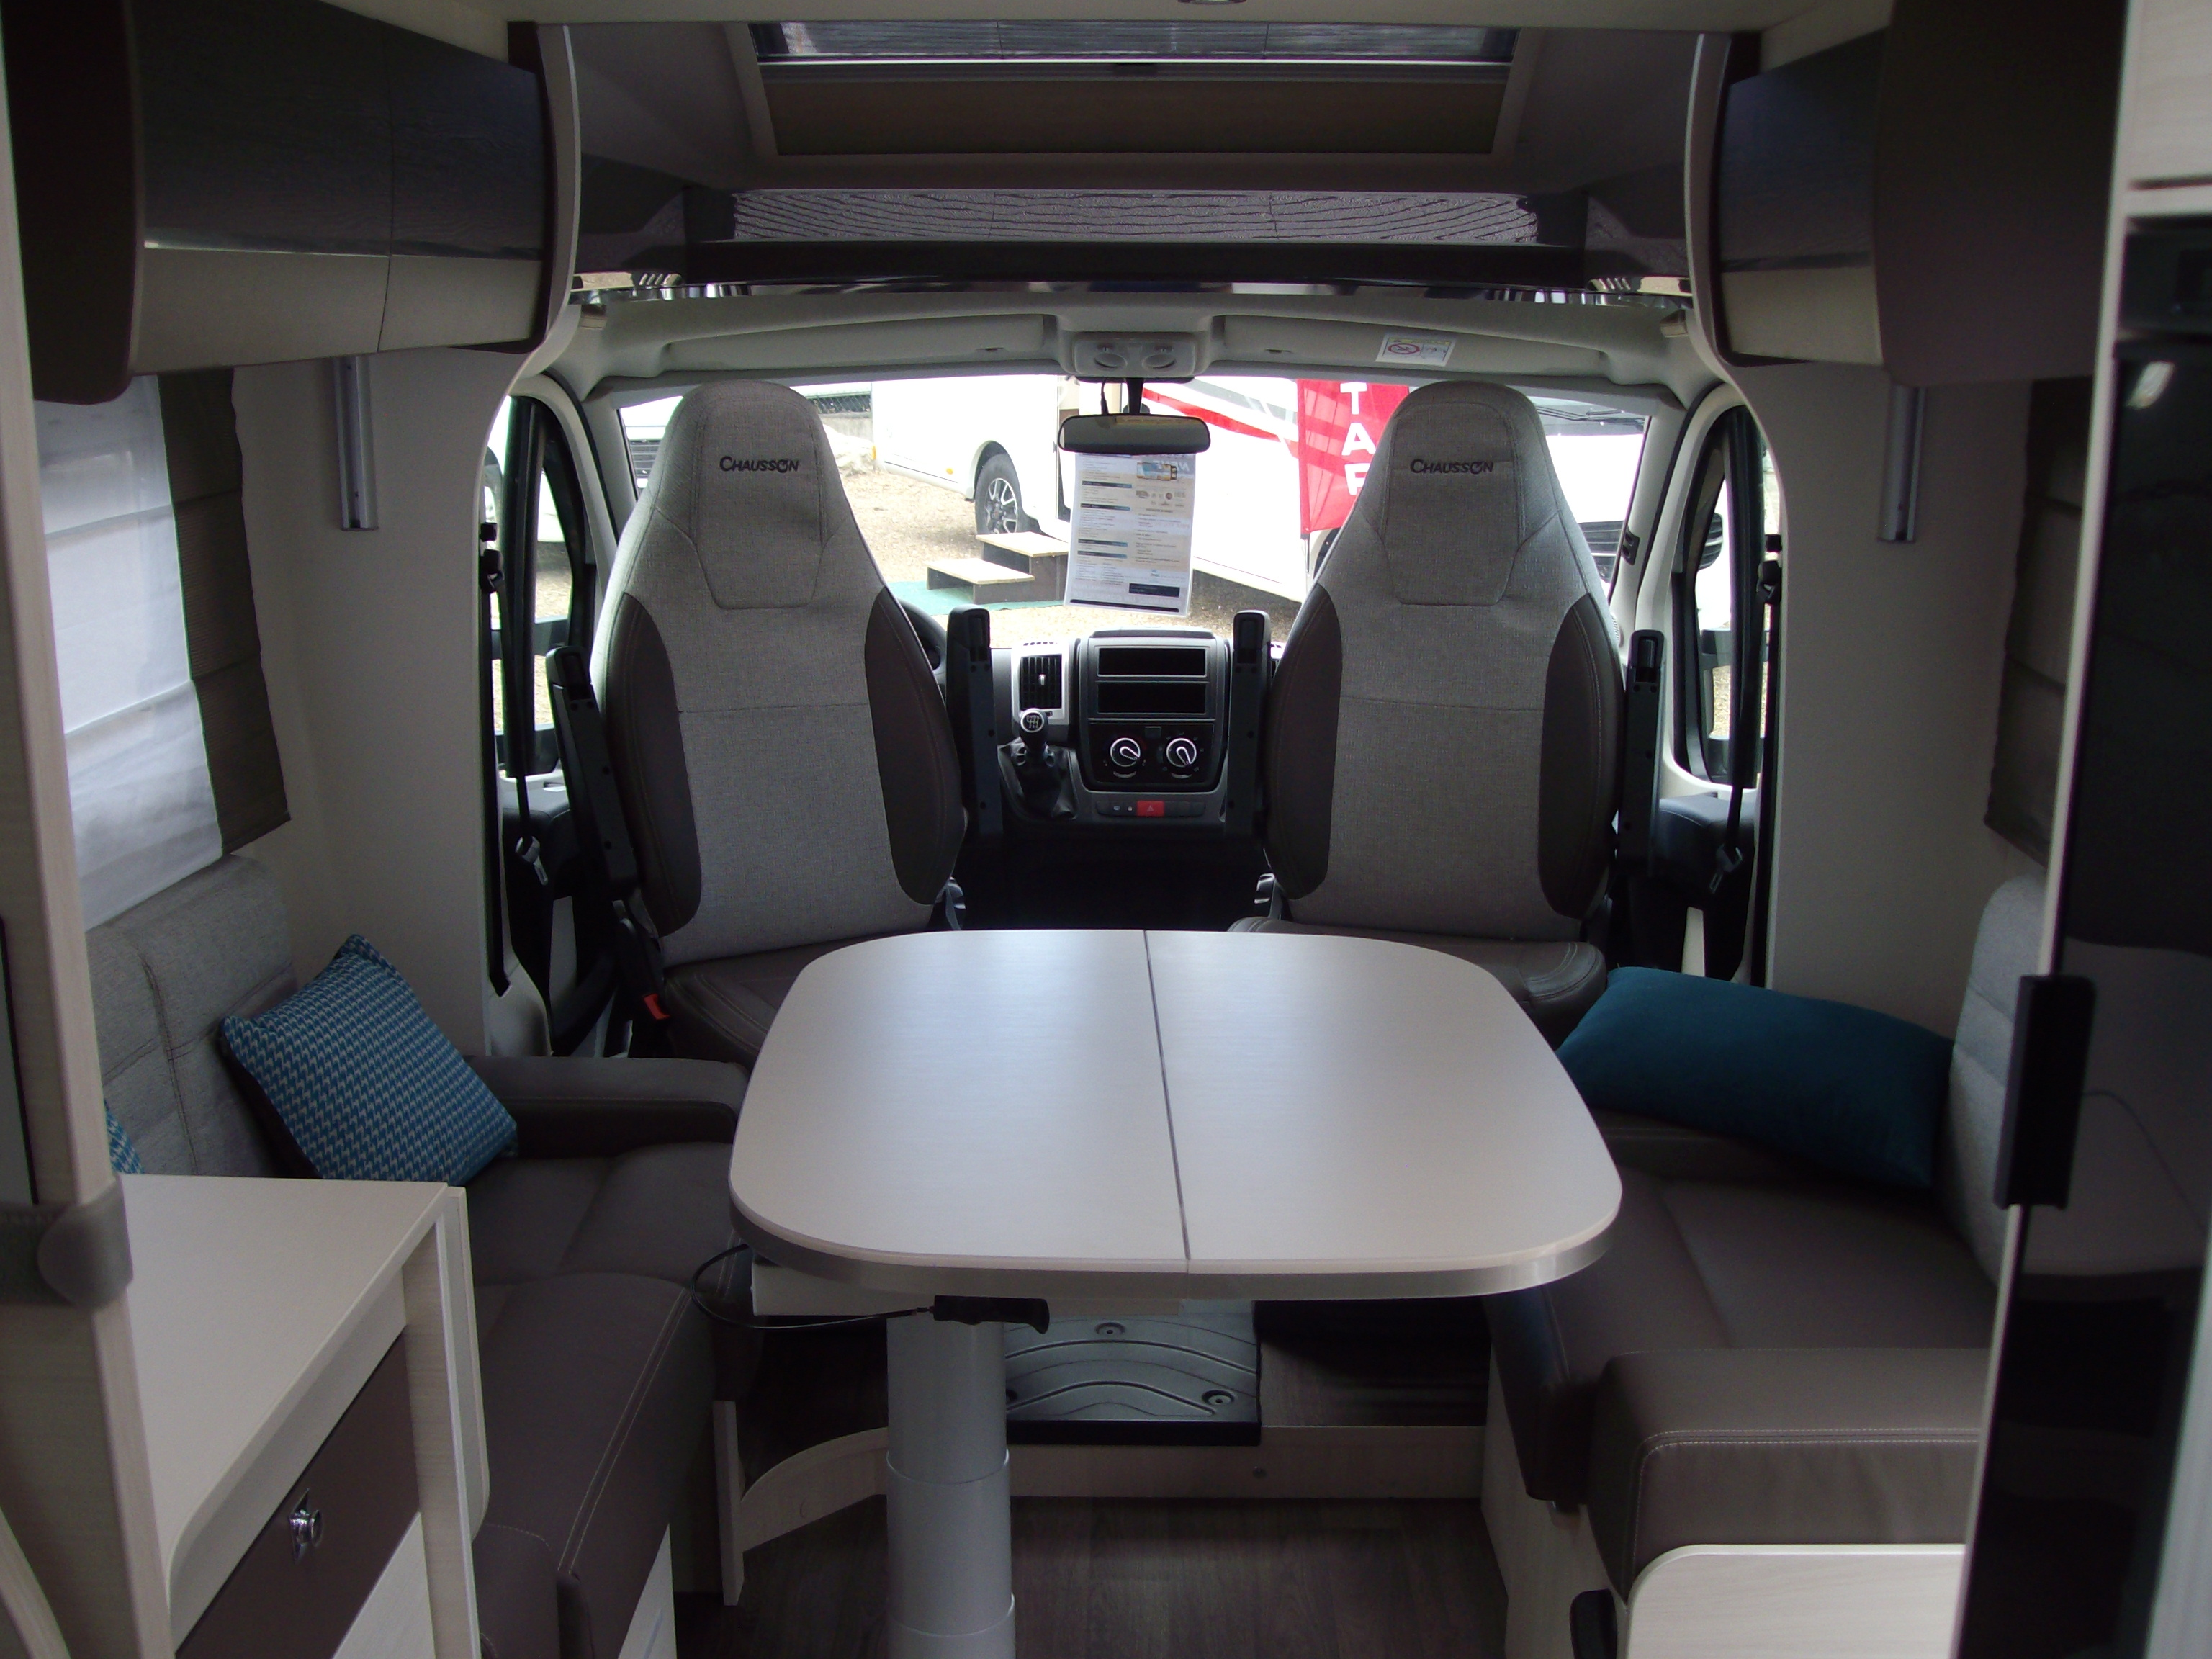 Chausson Welcome 738 Xlb - 3